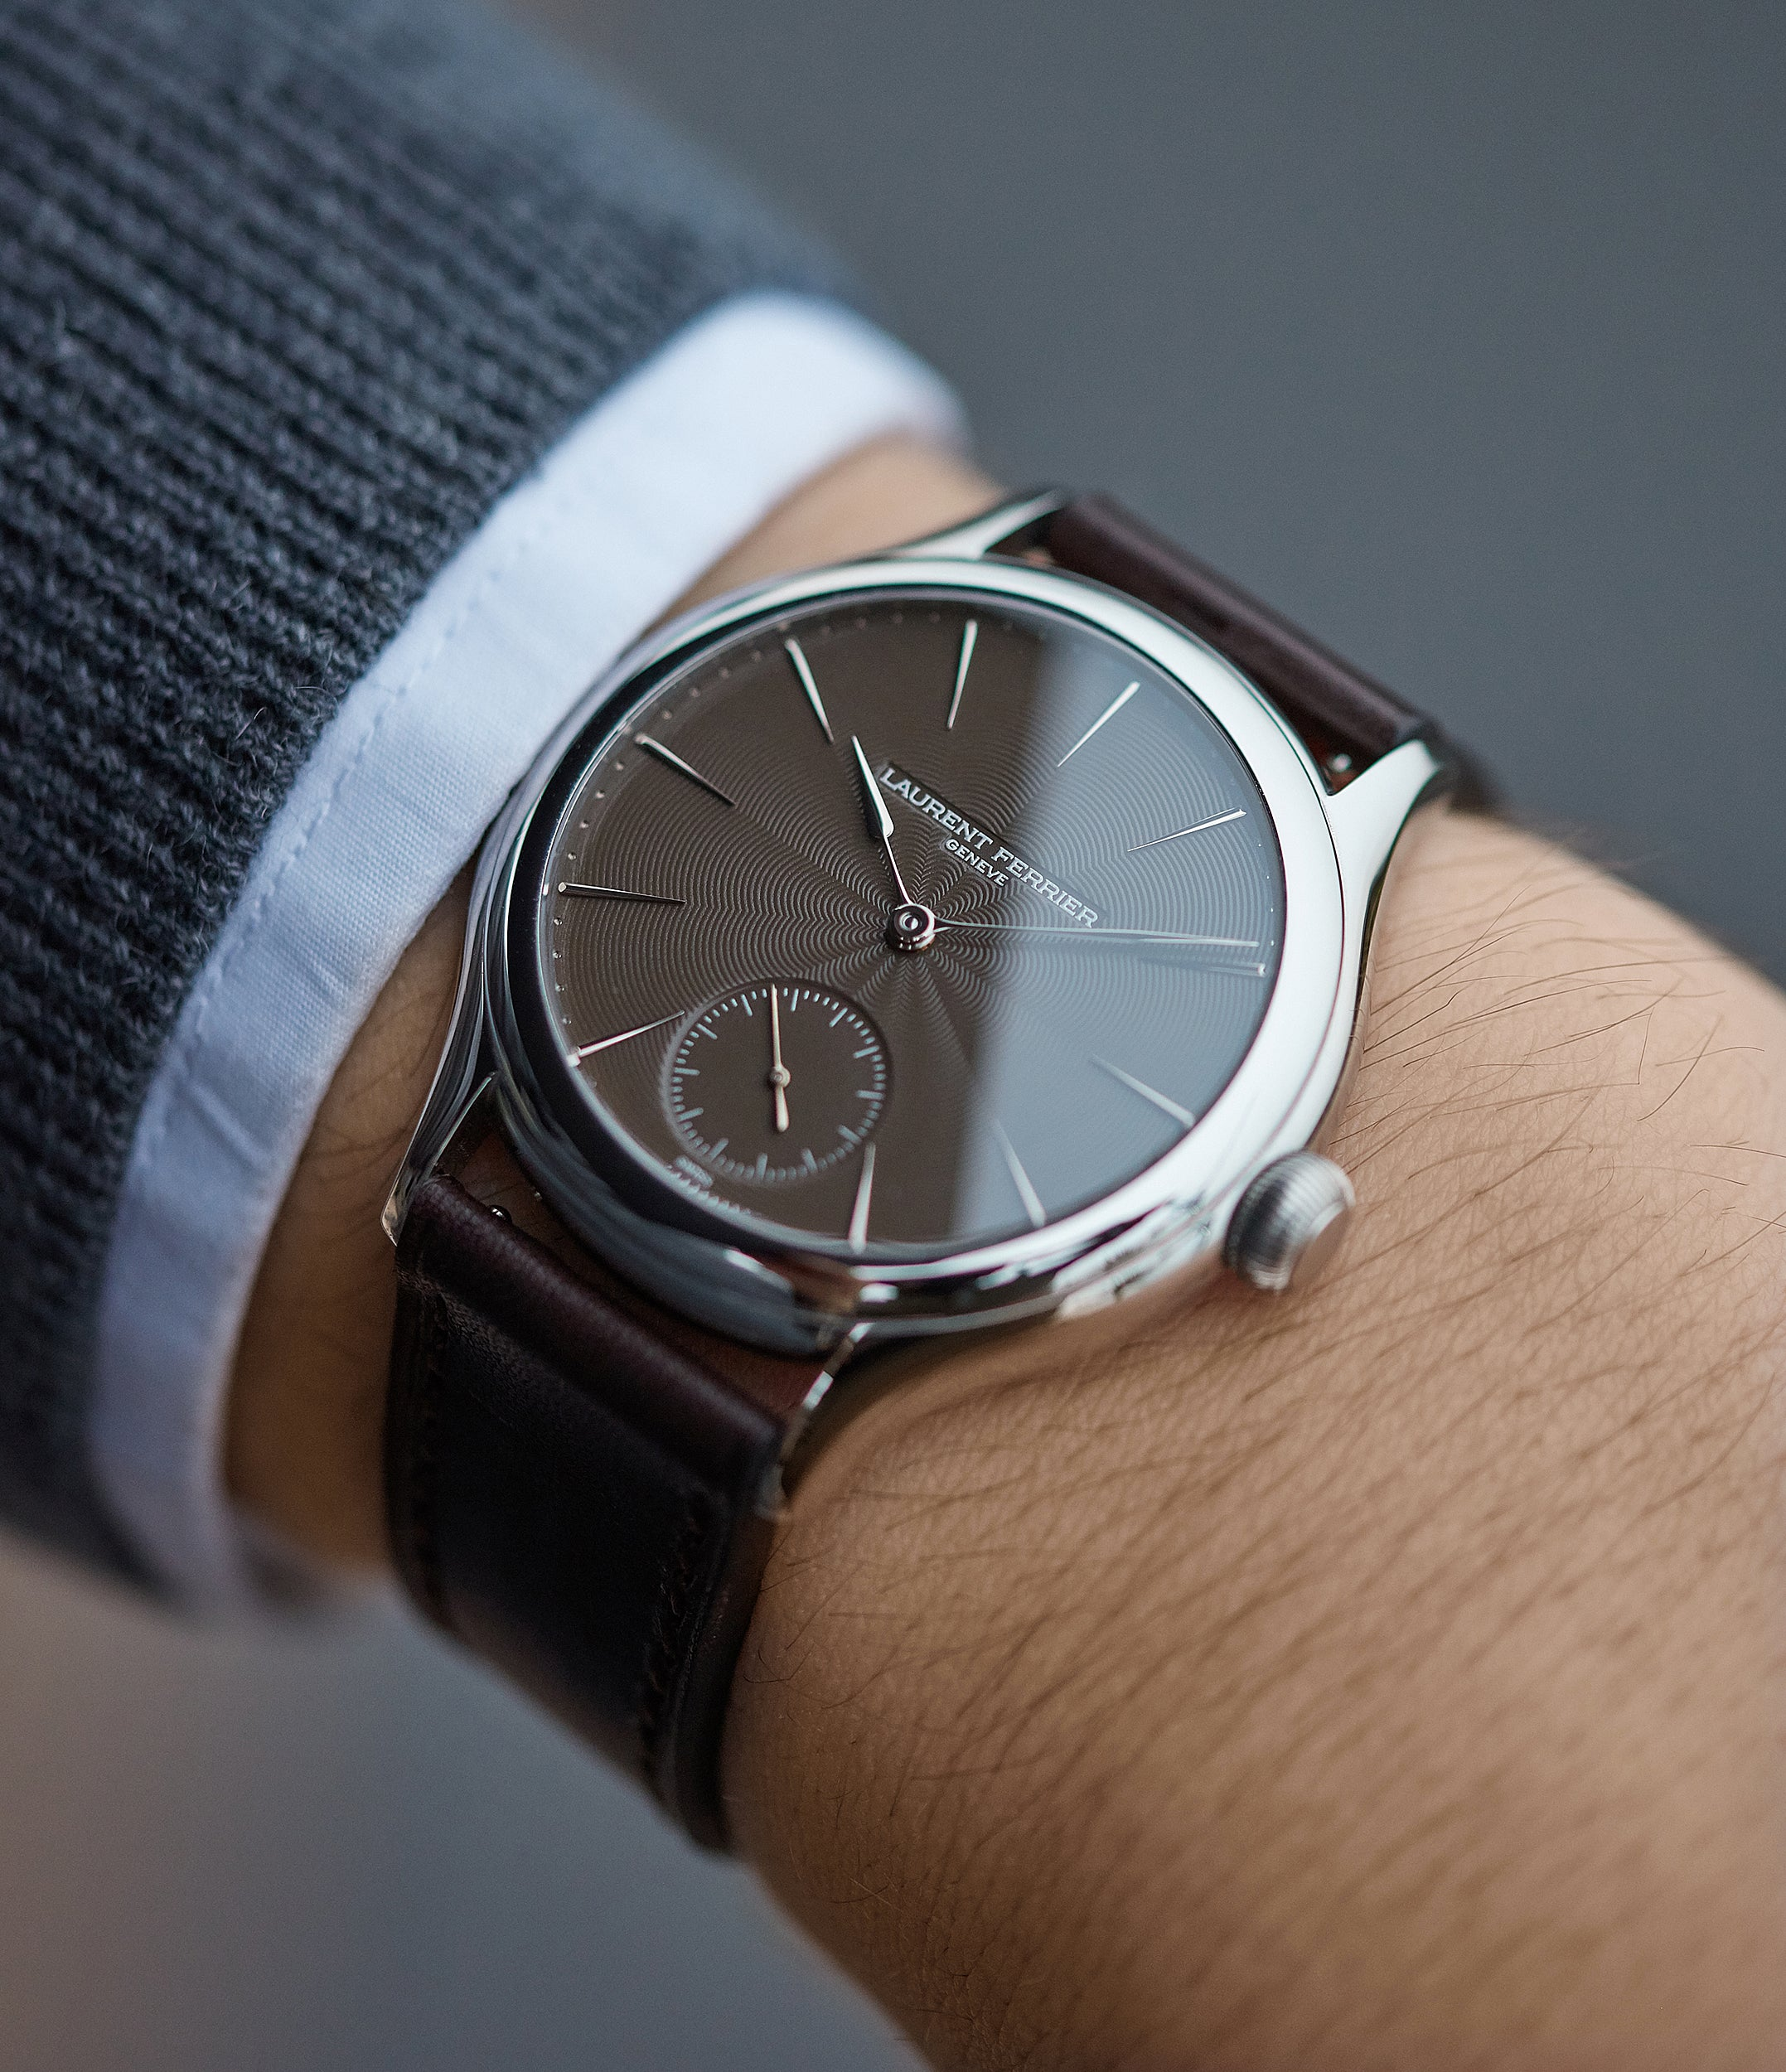 "Prototype Laurent Ferrier Galet Micro-rotor LF 229.01 ""Only Watch 2011"" steel watch brown dial for sale online at A Collected Man London UK approved seller of independent watchmakers"